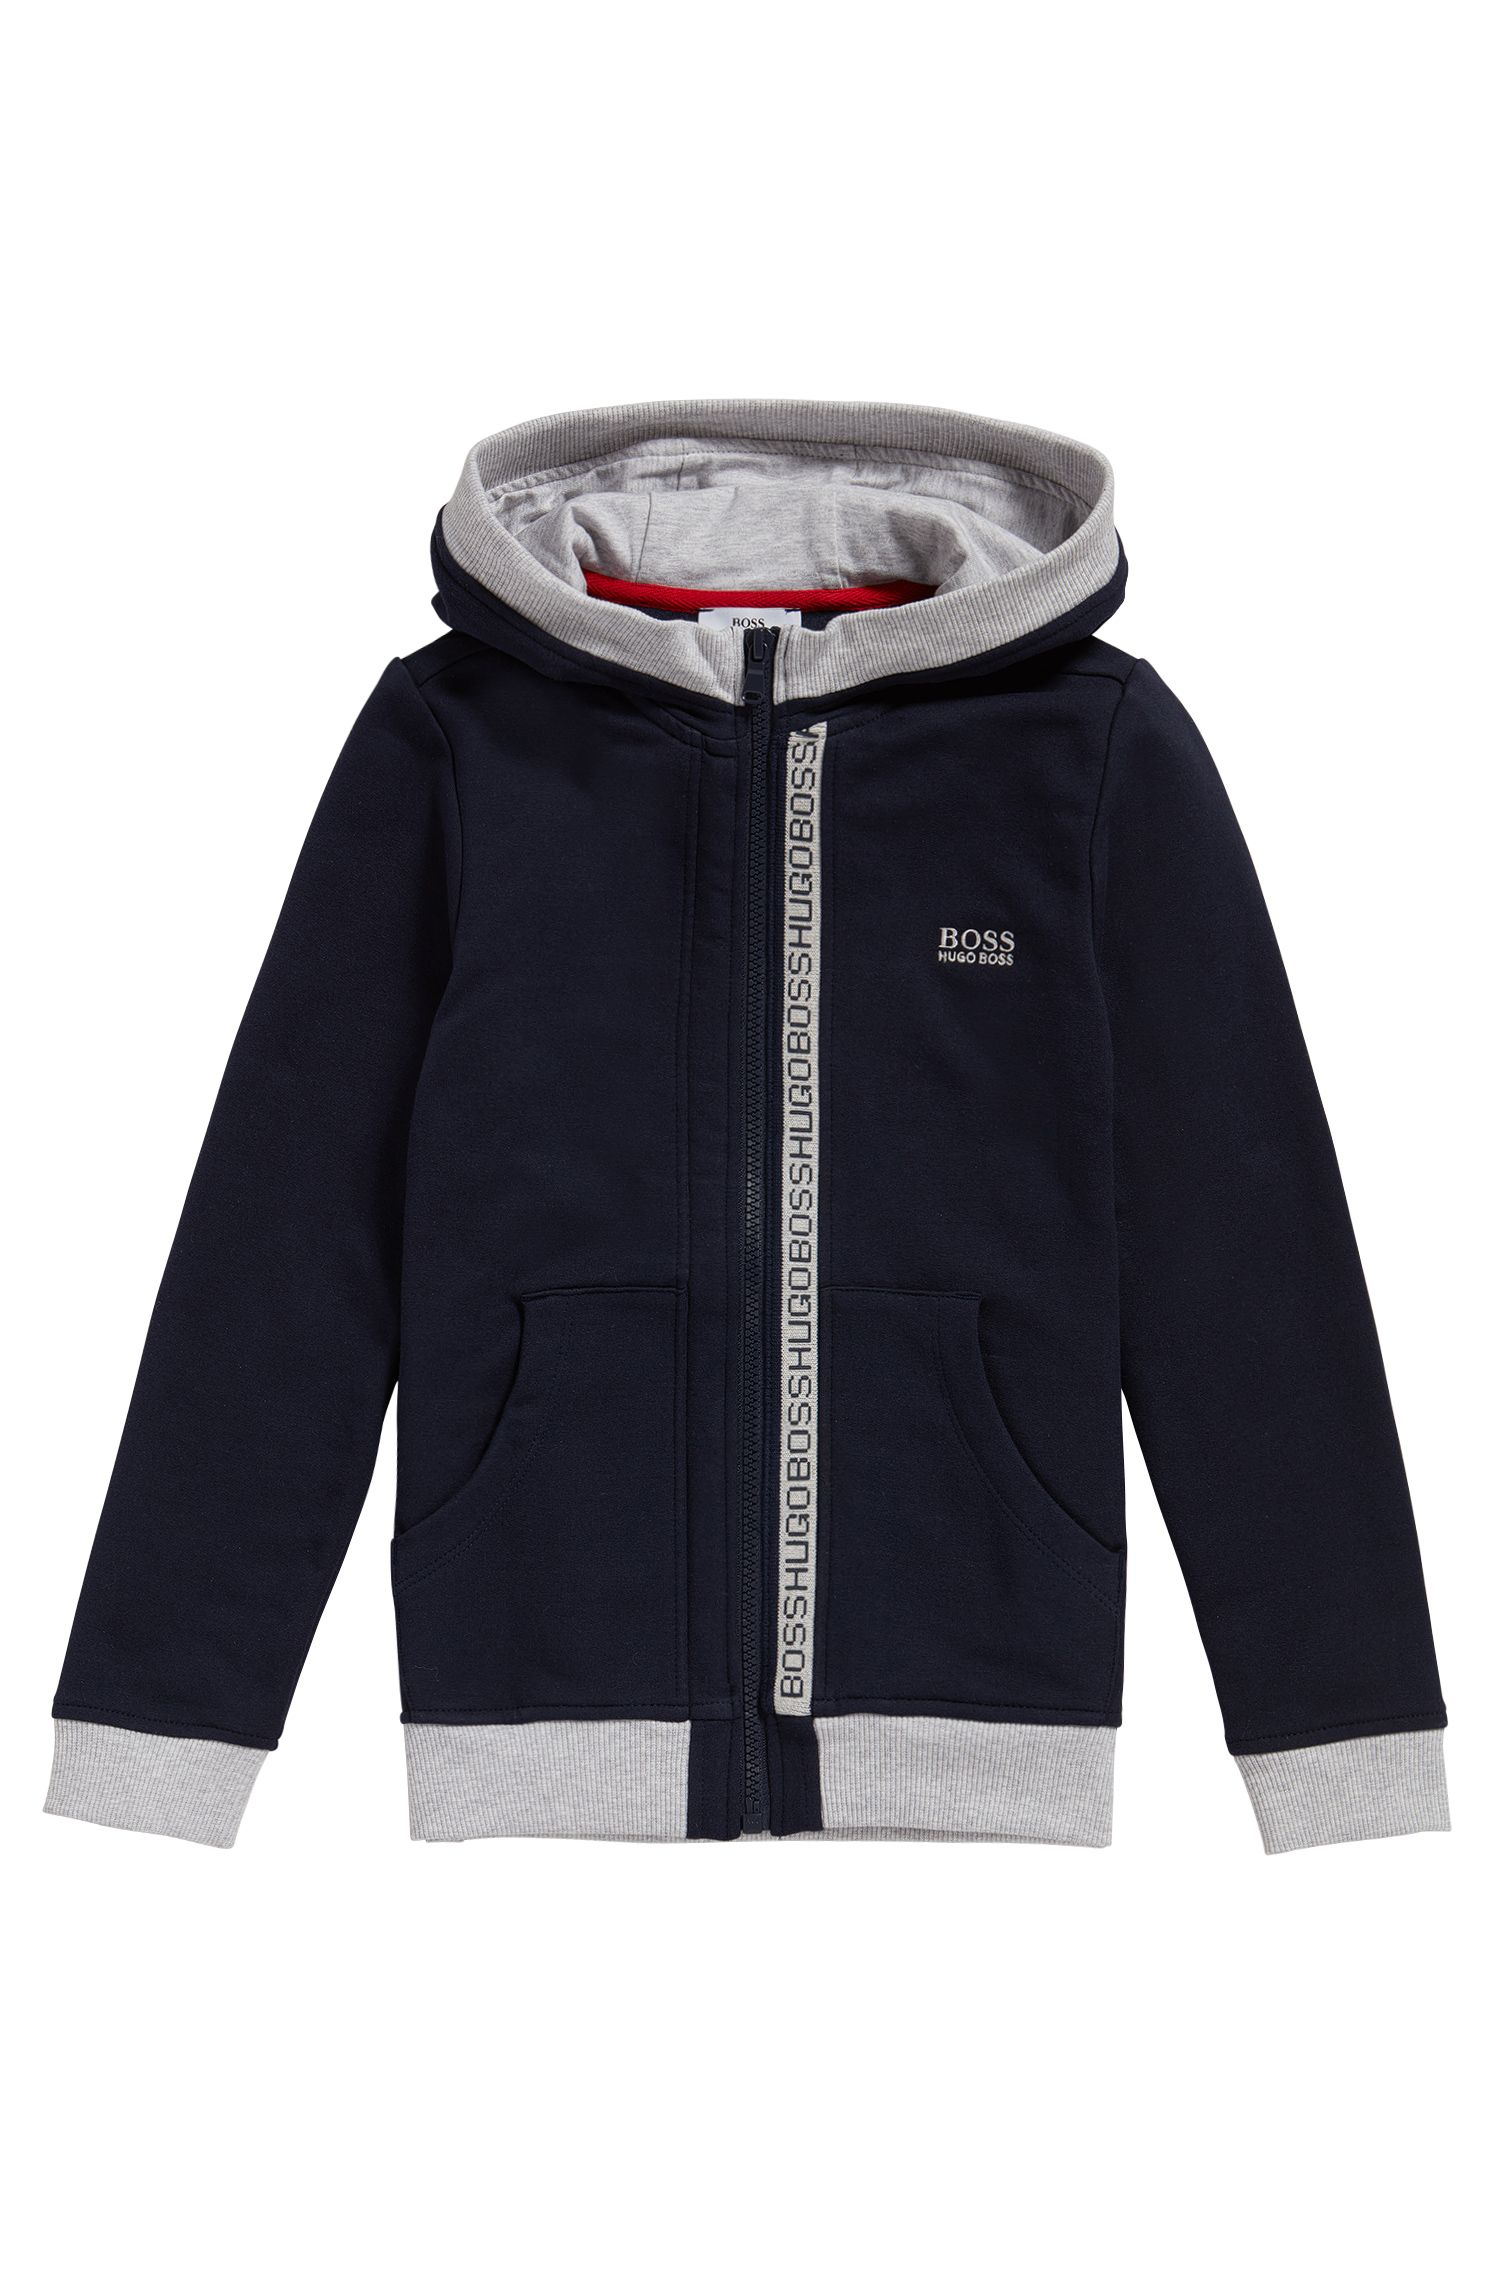 Kids' hooded sweatshirt jacket in stretch cotton: 'J25978'